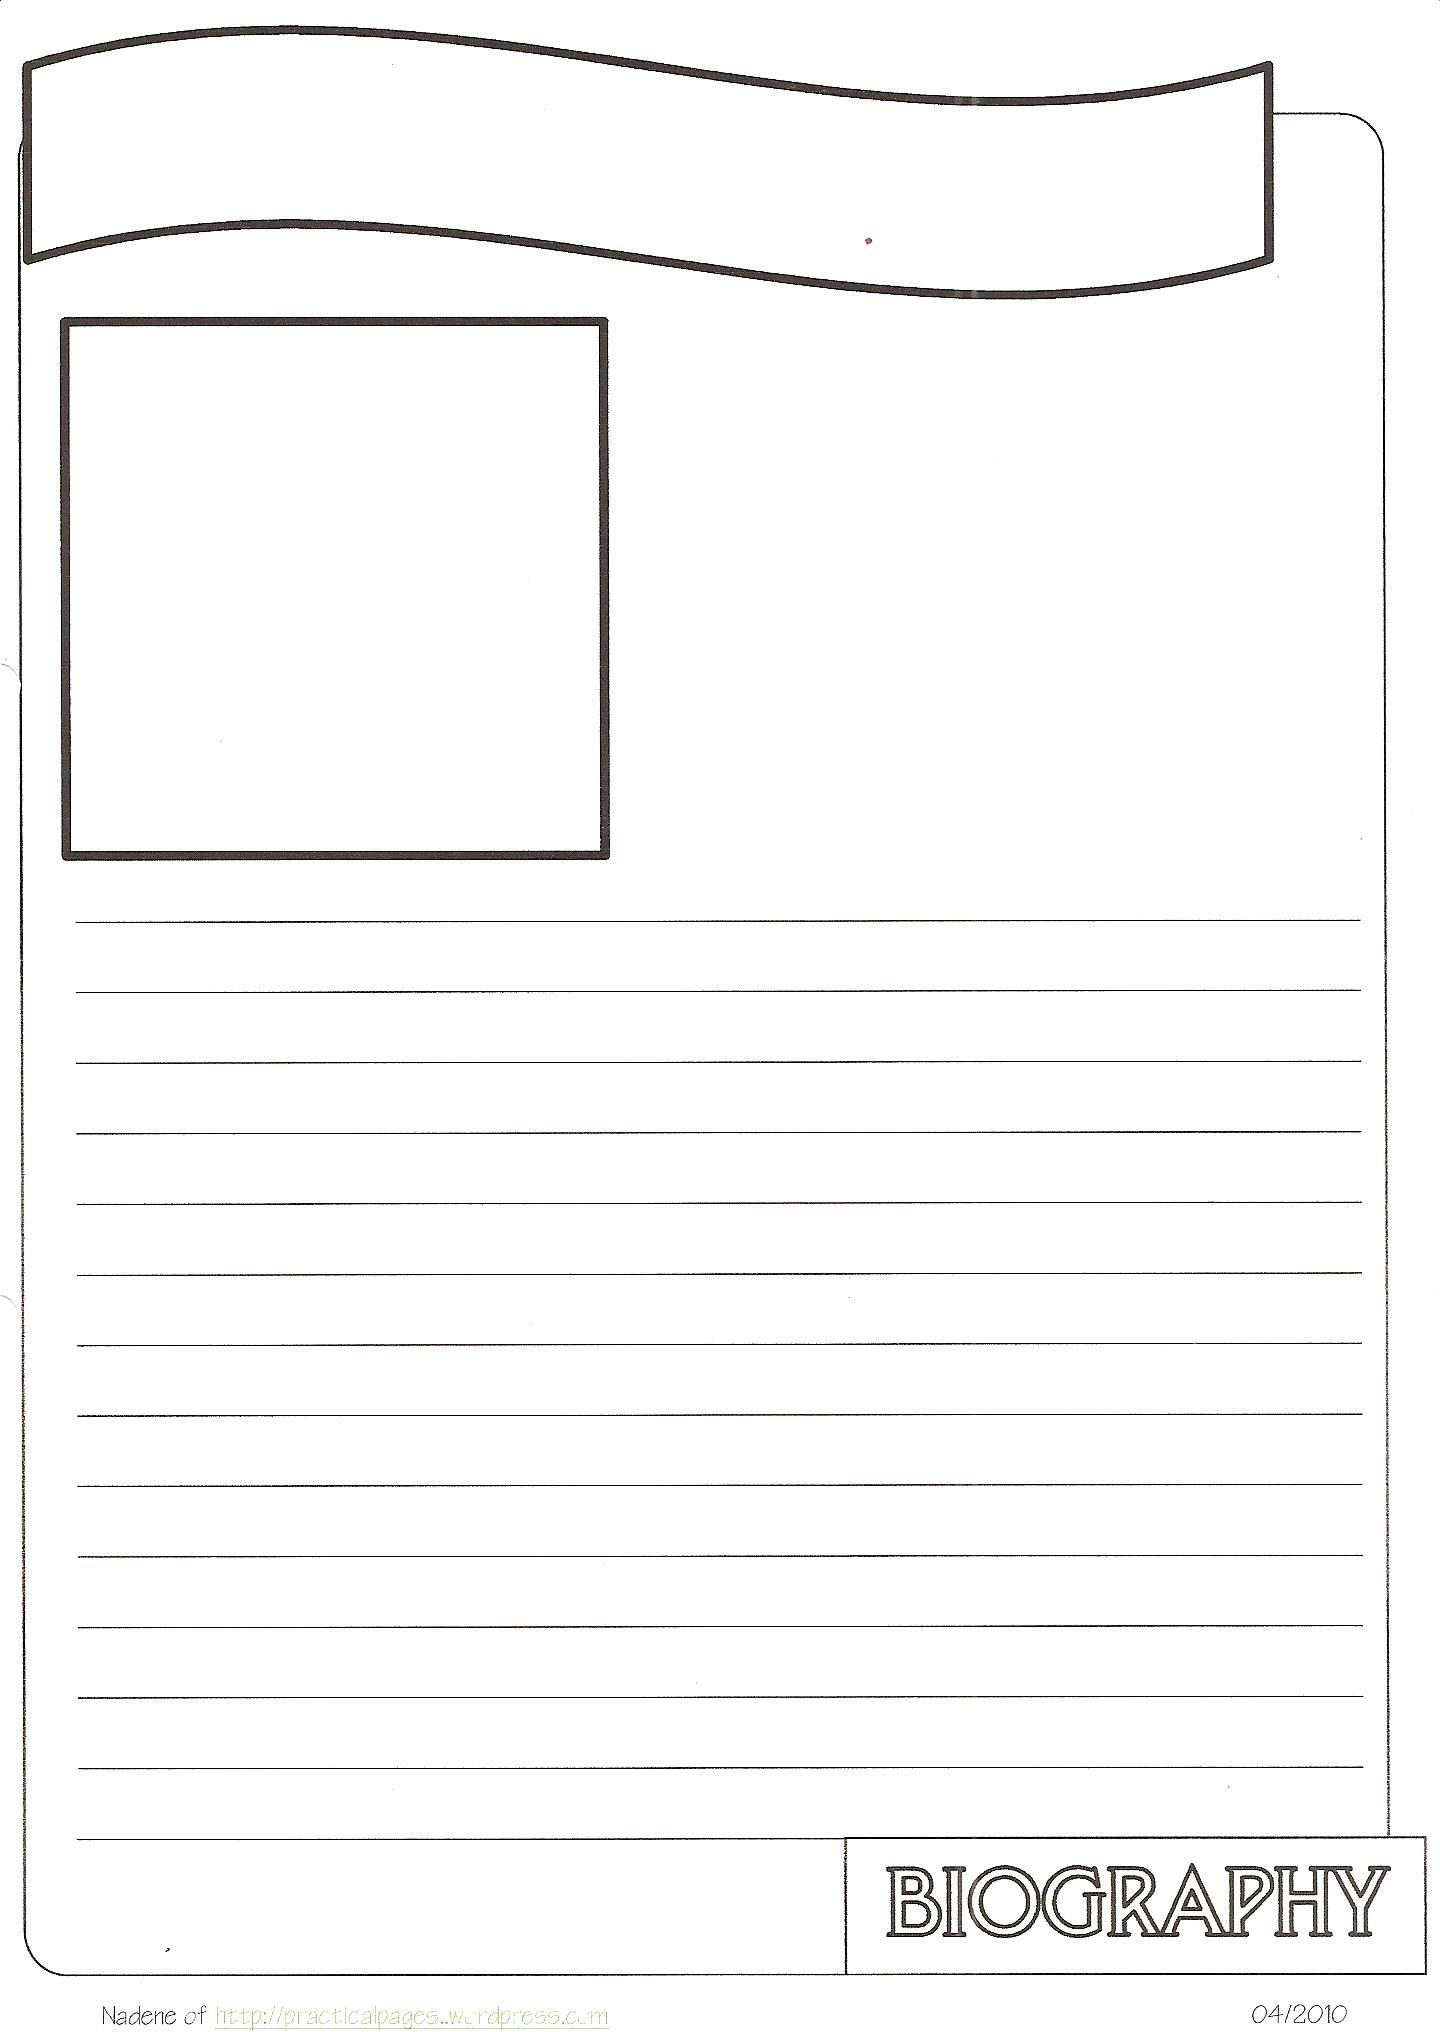 medium resolution of New Biography Notebook Page Templates   Biography template